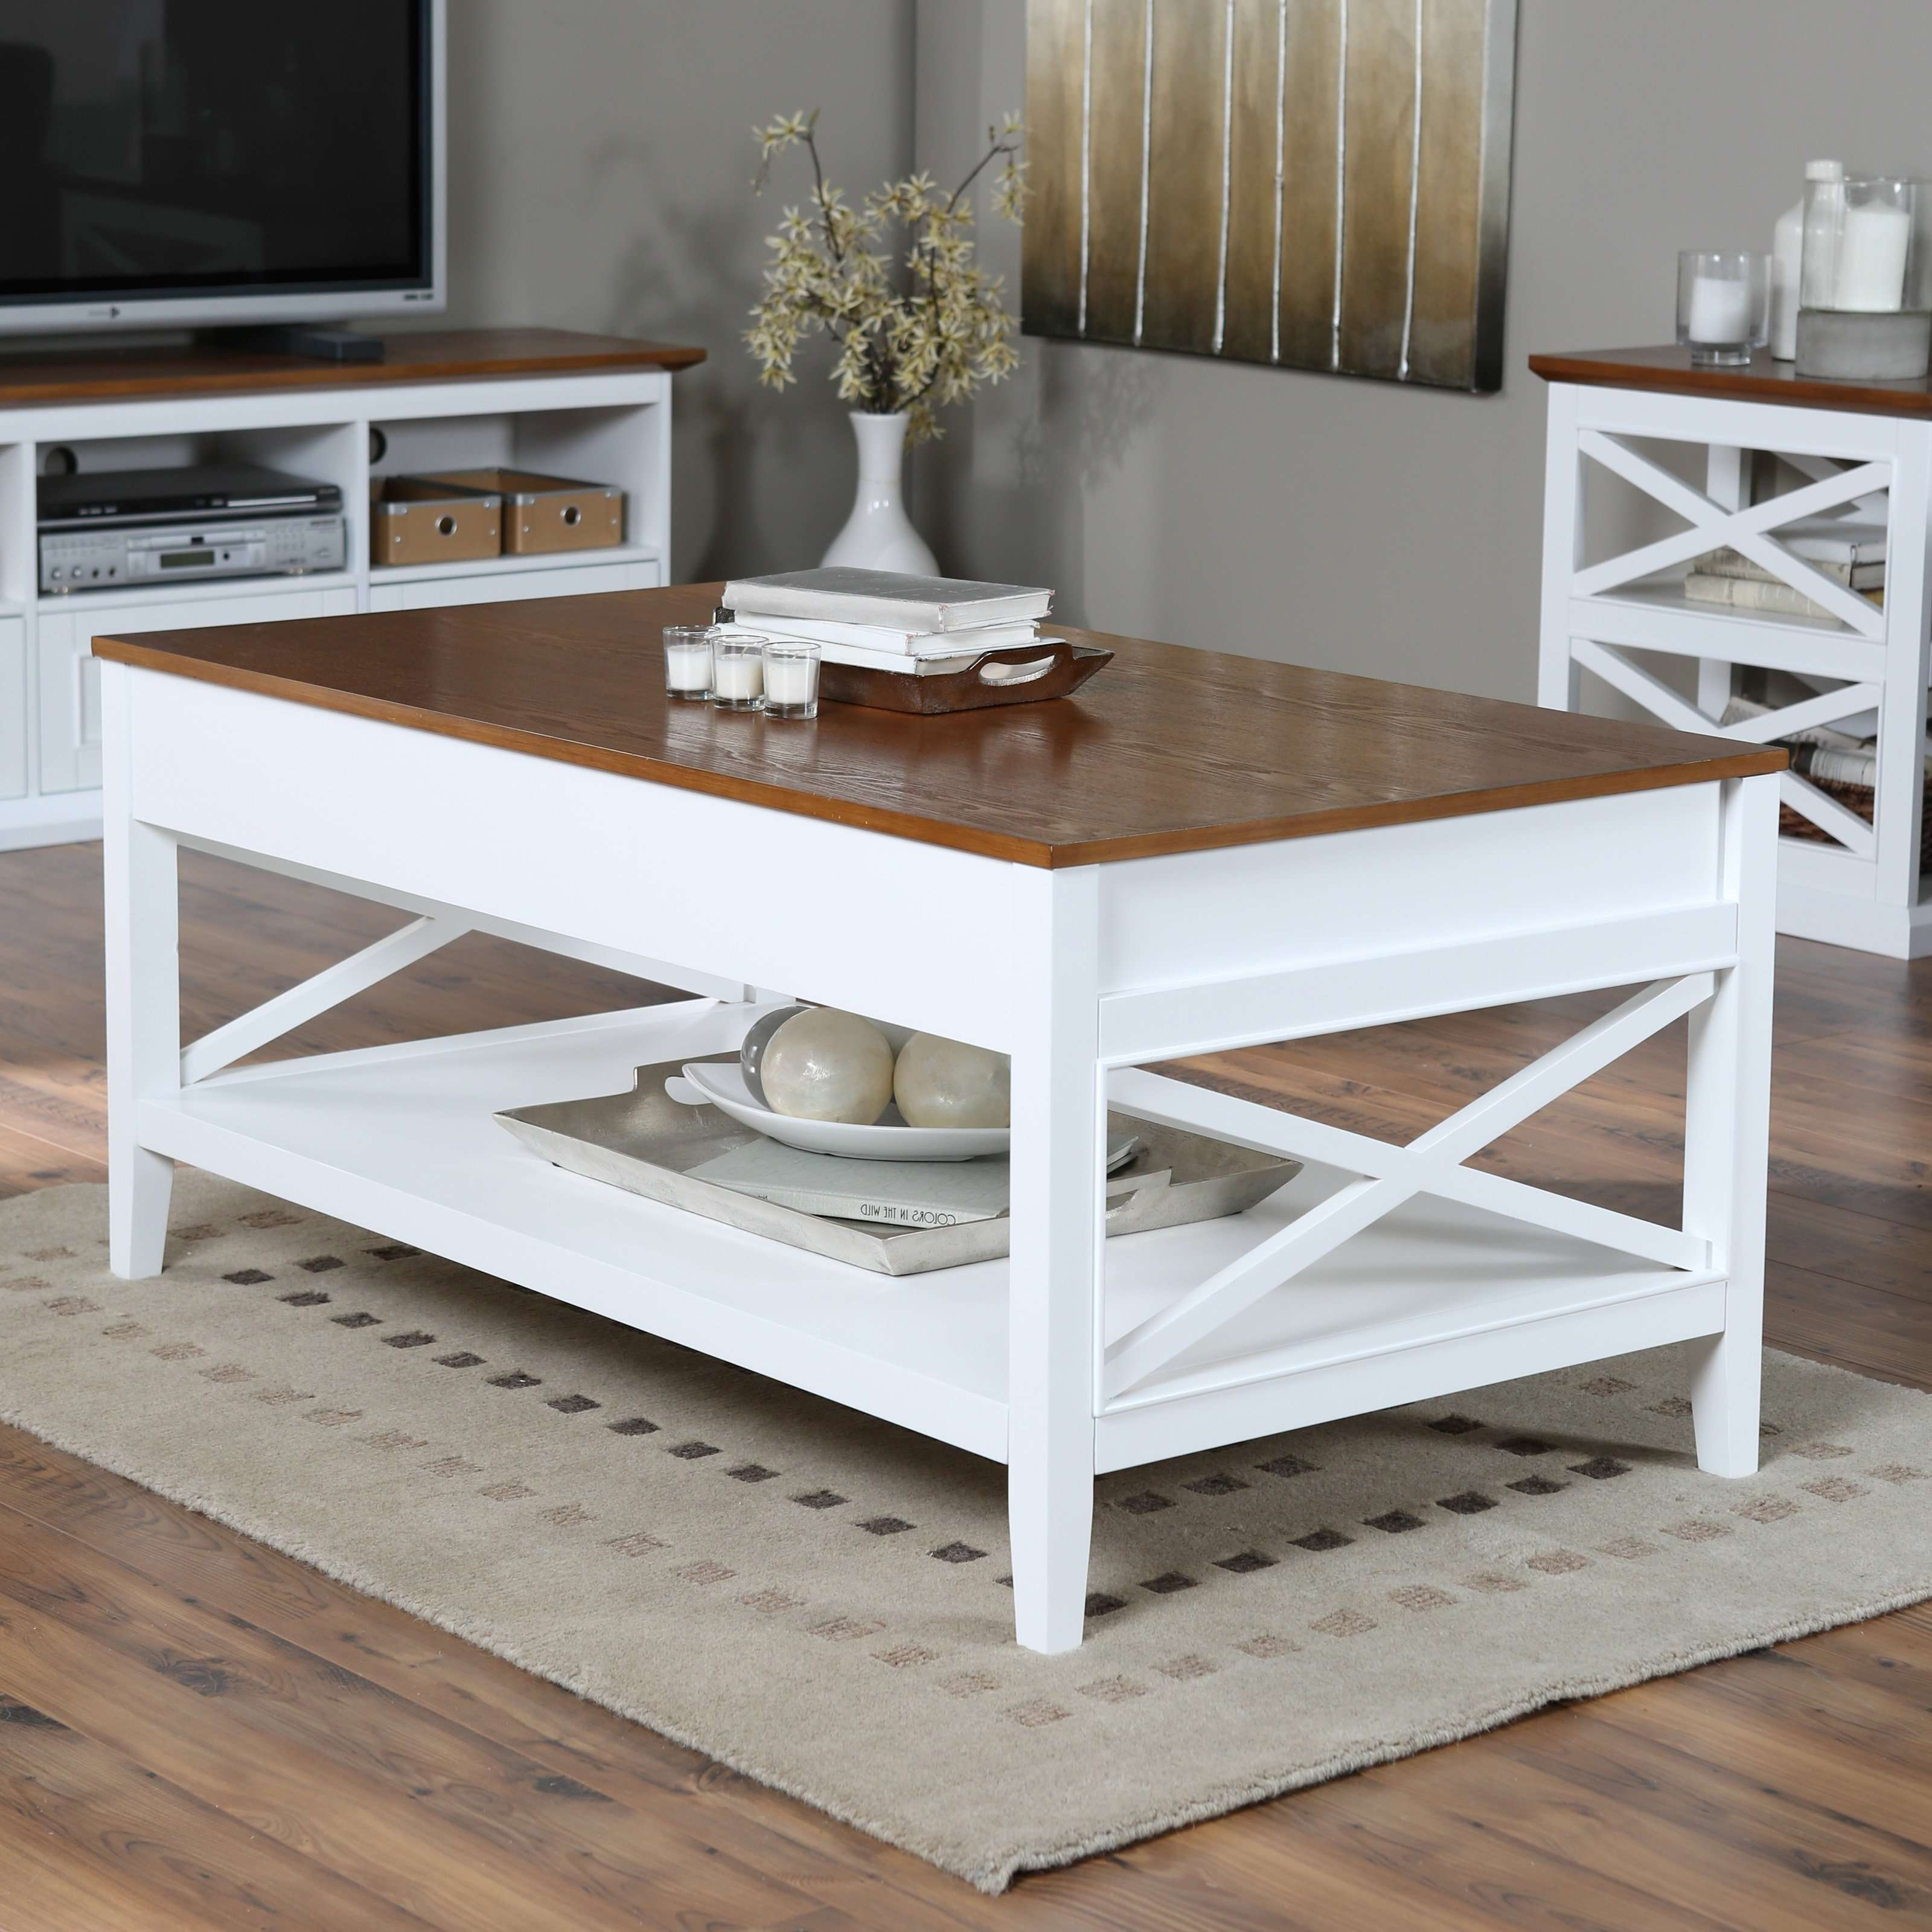 Hayneedle Pertaining To Well Known Lift Top Oak Coffee Tables (View 2 of 20)